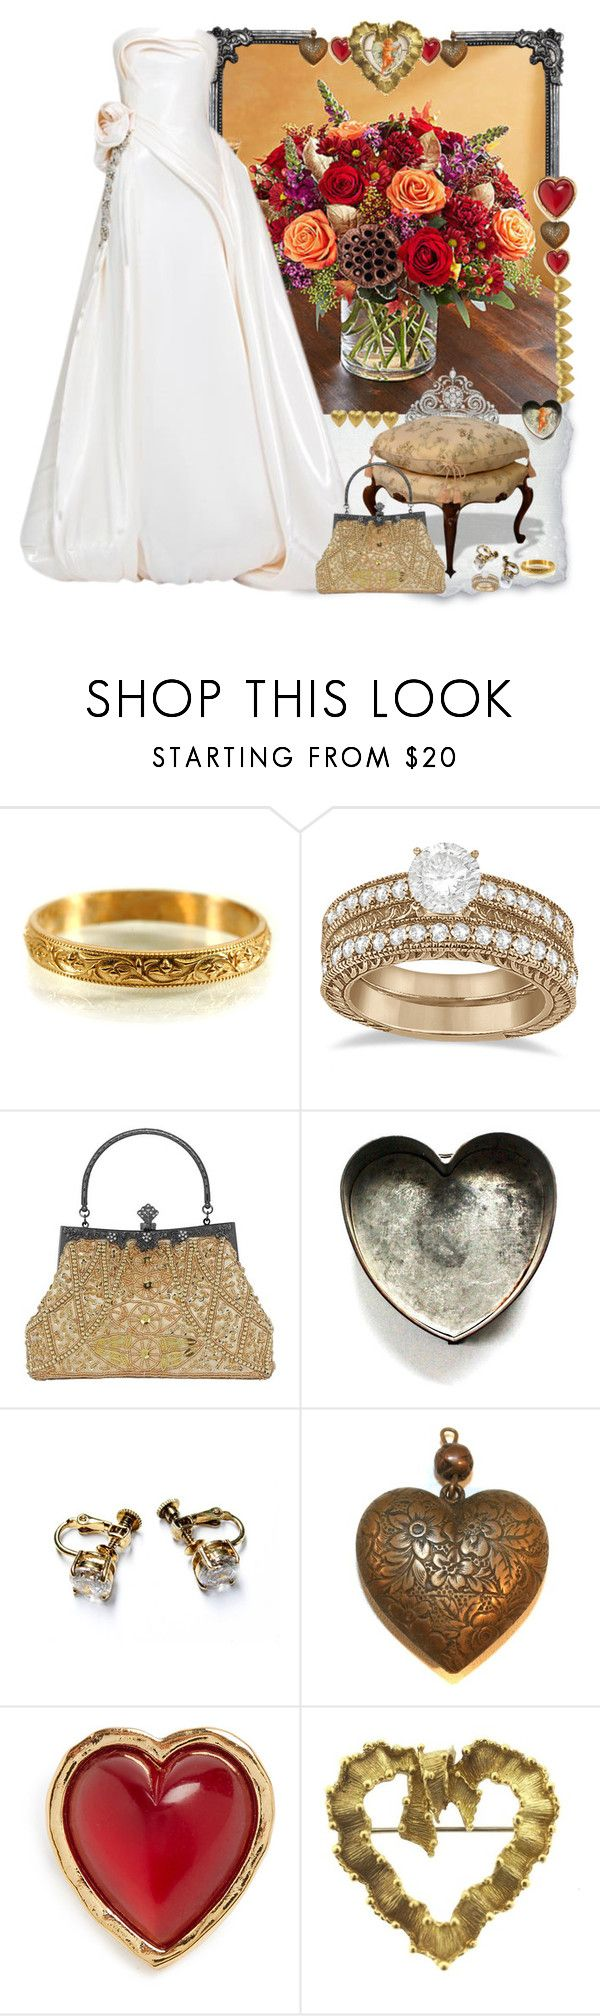 """Autumn wedding"" by fashionrushs ❤ liked on Polyvore featuring Rubin Singer, Allurez, Sonia Rykiel and Tiffany & Co."